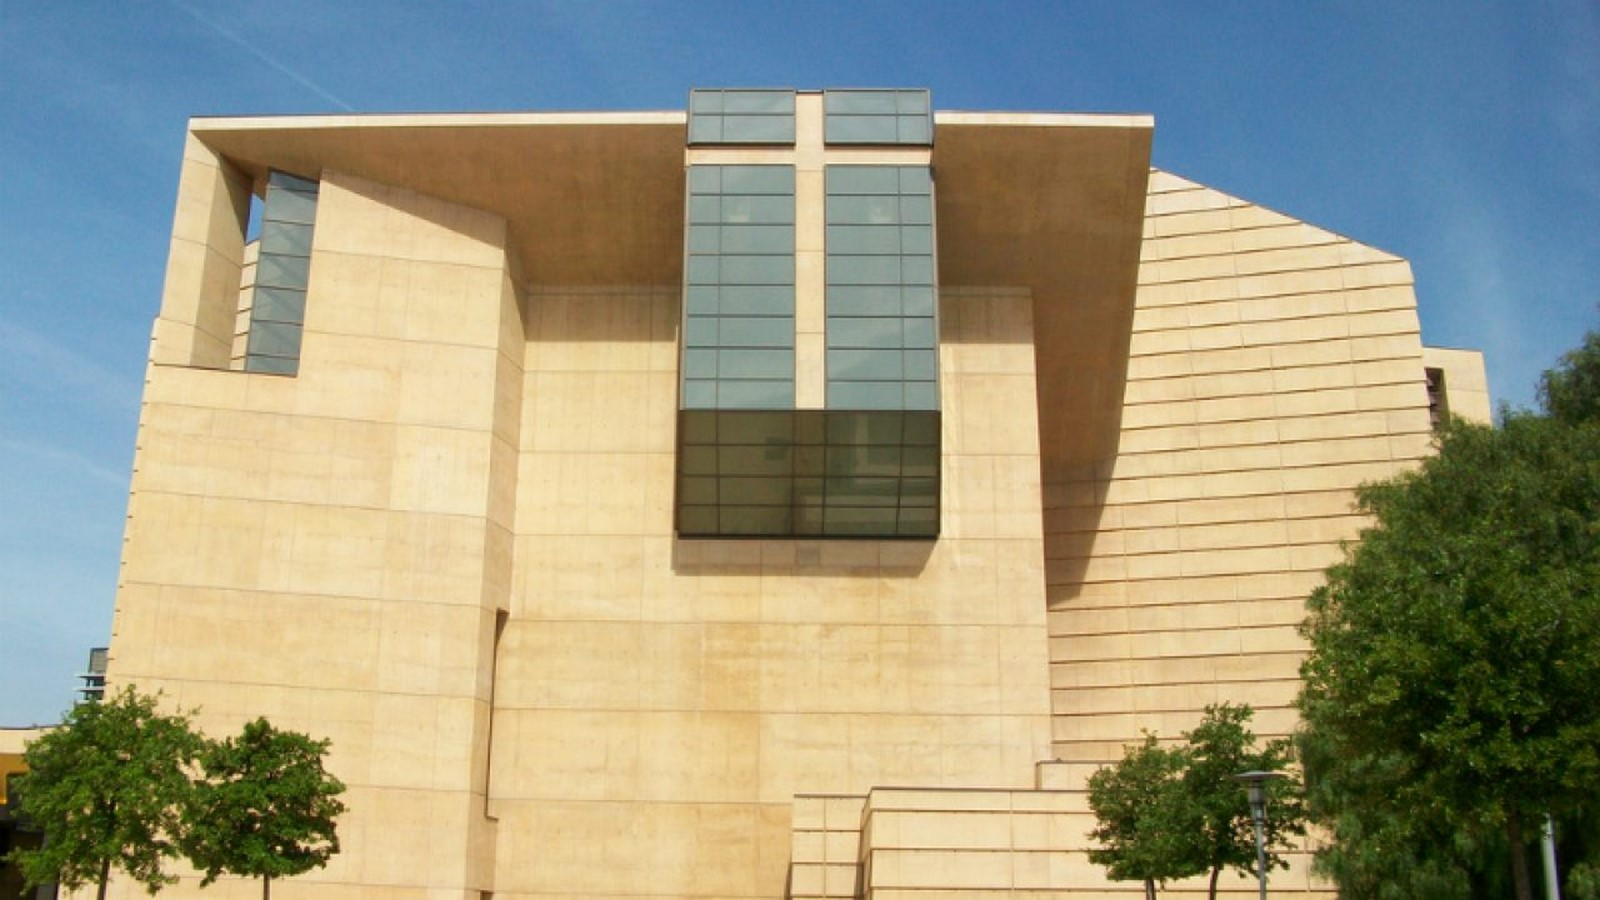 Cathedral of Our Lady of the Angels by Rafael Moneo: A series of acute and obtuse angles - Sheet5